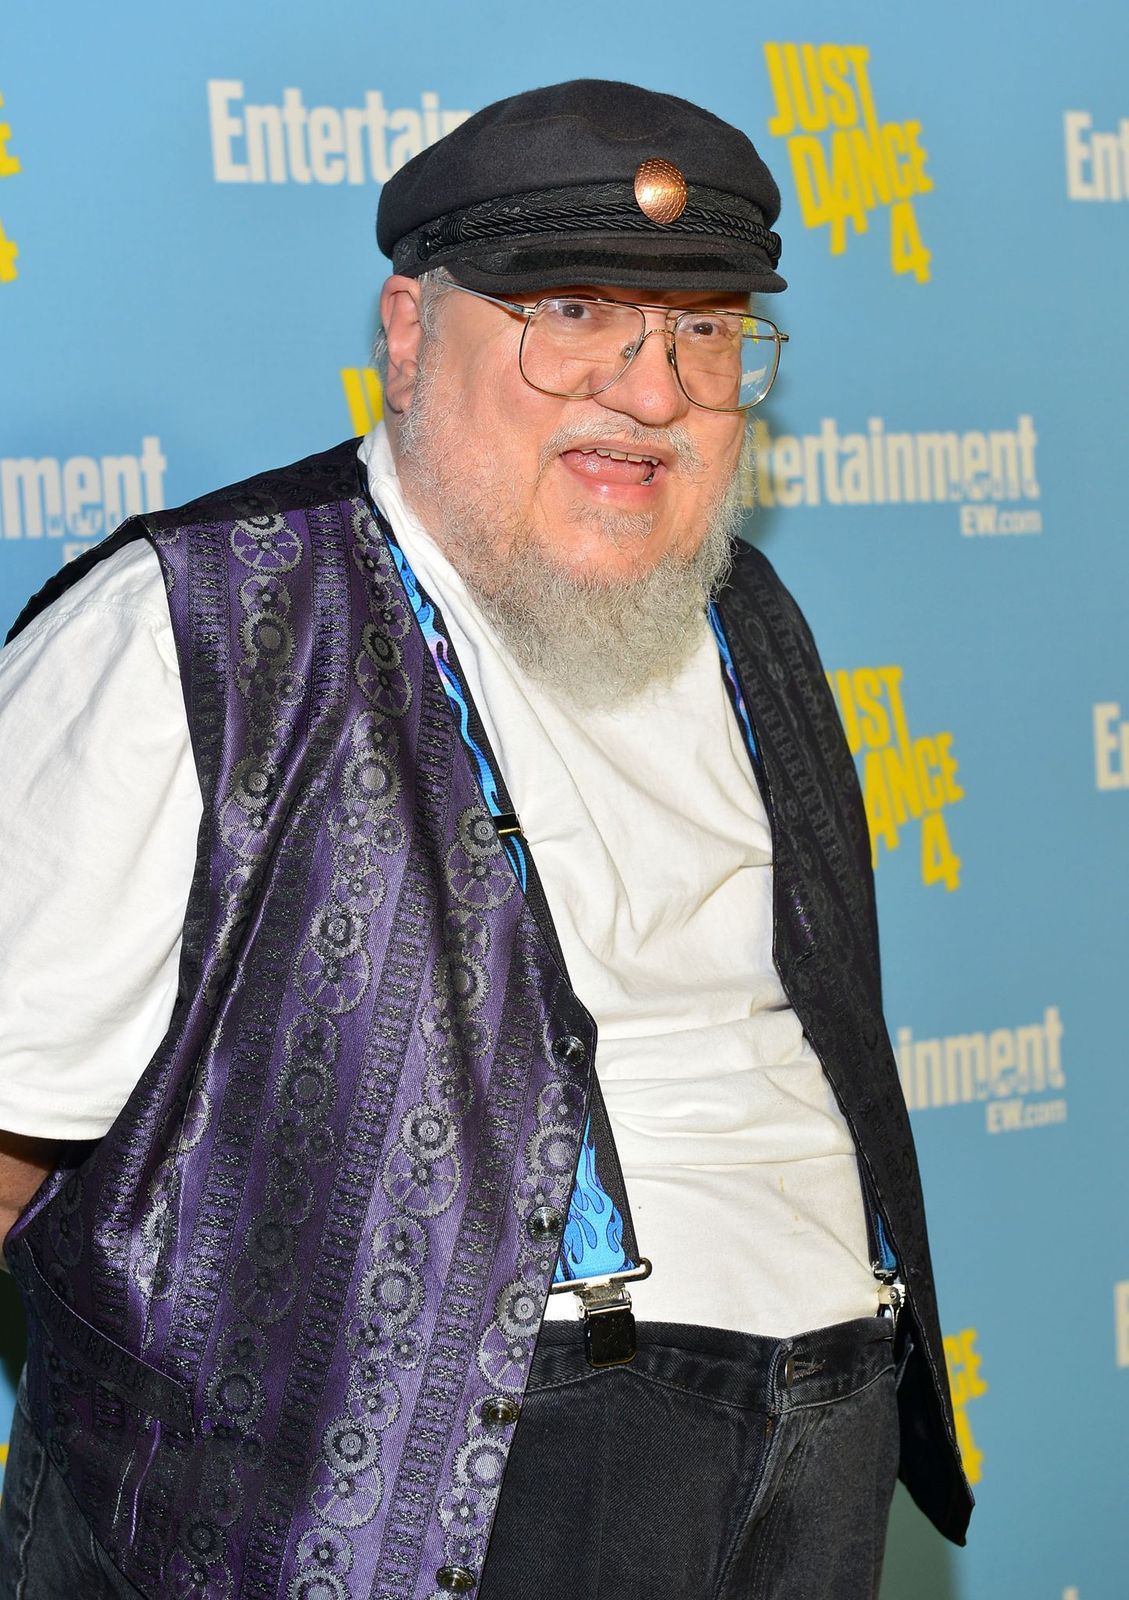 """George R. R. Martin at""""Entertainment Weekly's"""" 6th Annual Comic-Con Celebrationon July 14, 2012, in San Diego, California 